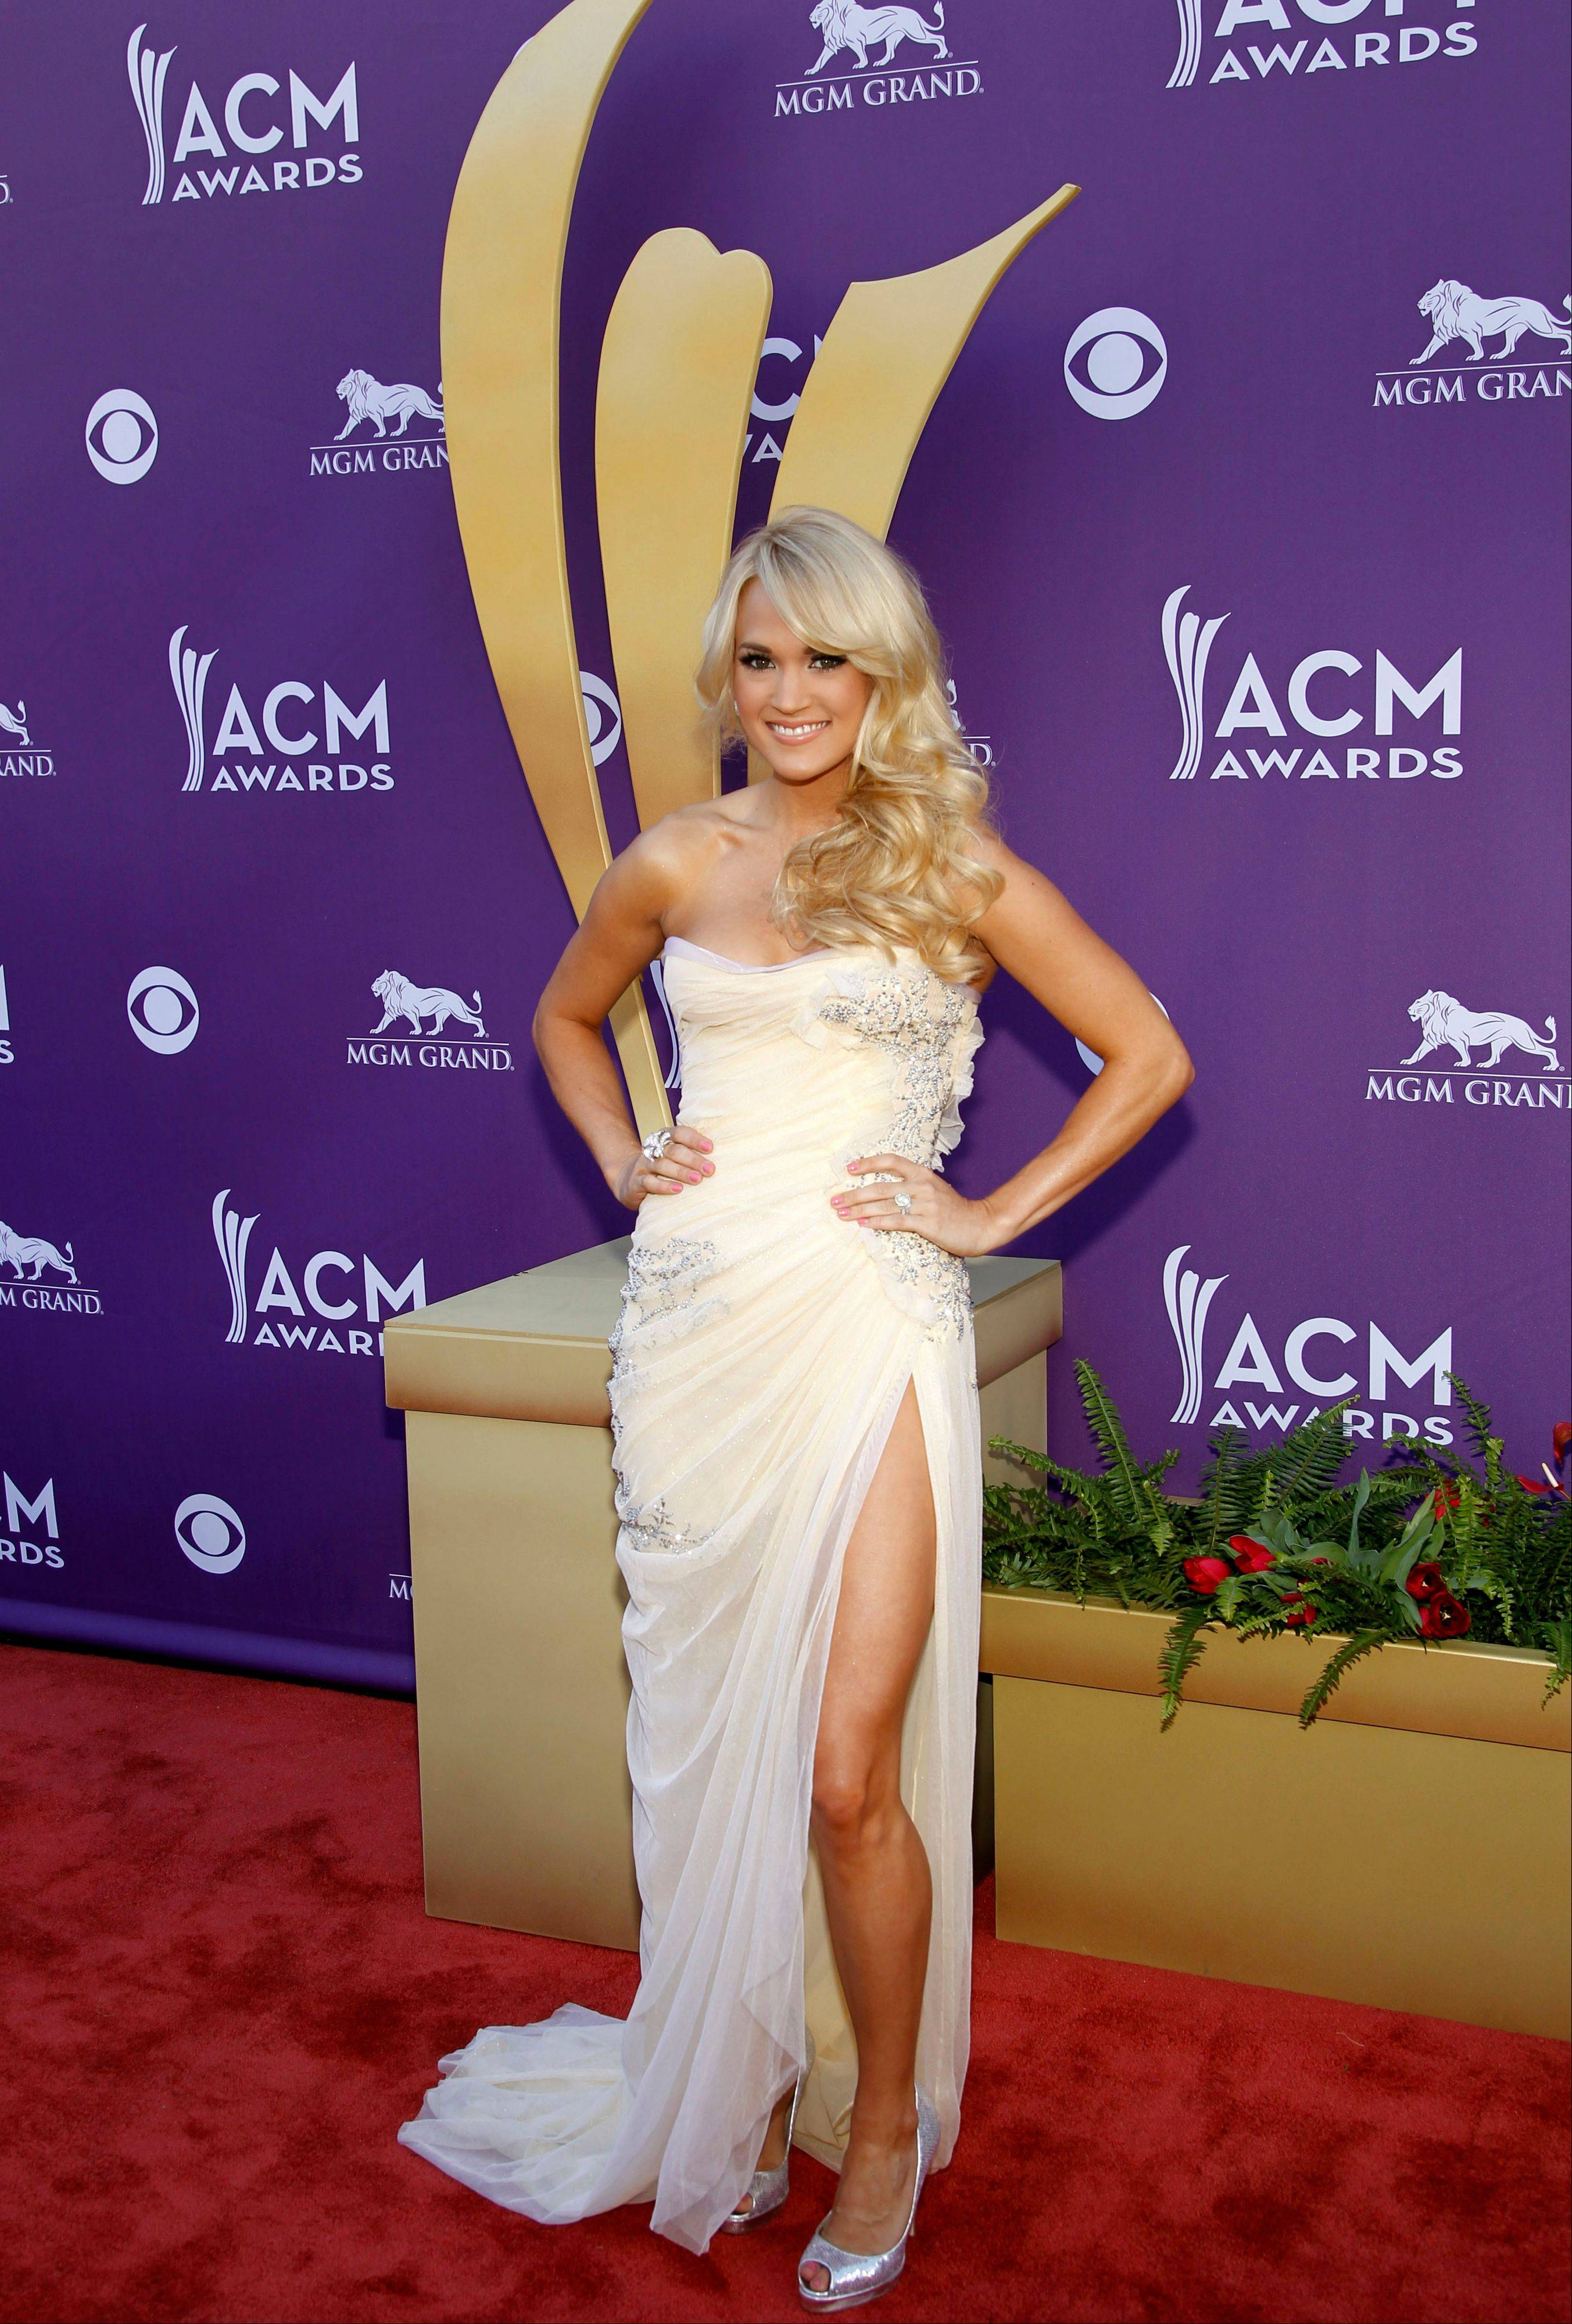 Carrie Underwood who has released her first album in three years continues her streak of glamorous red carpet apperances.